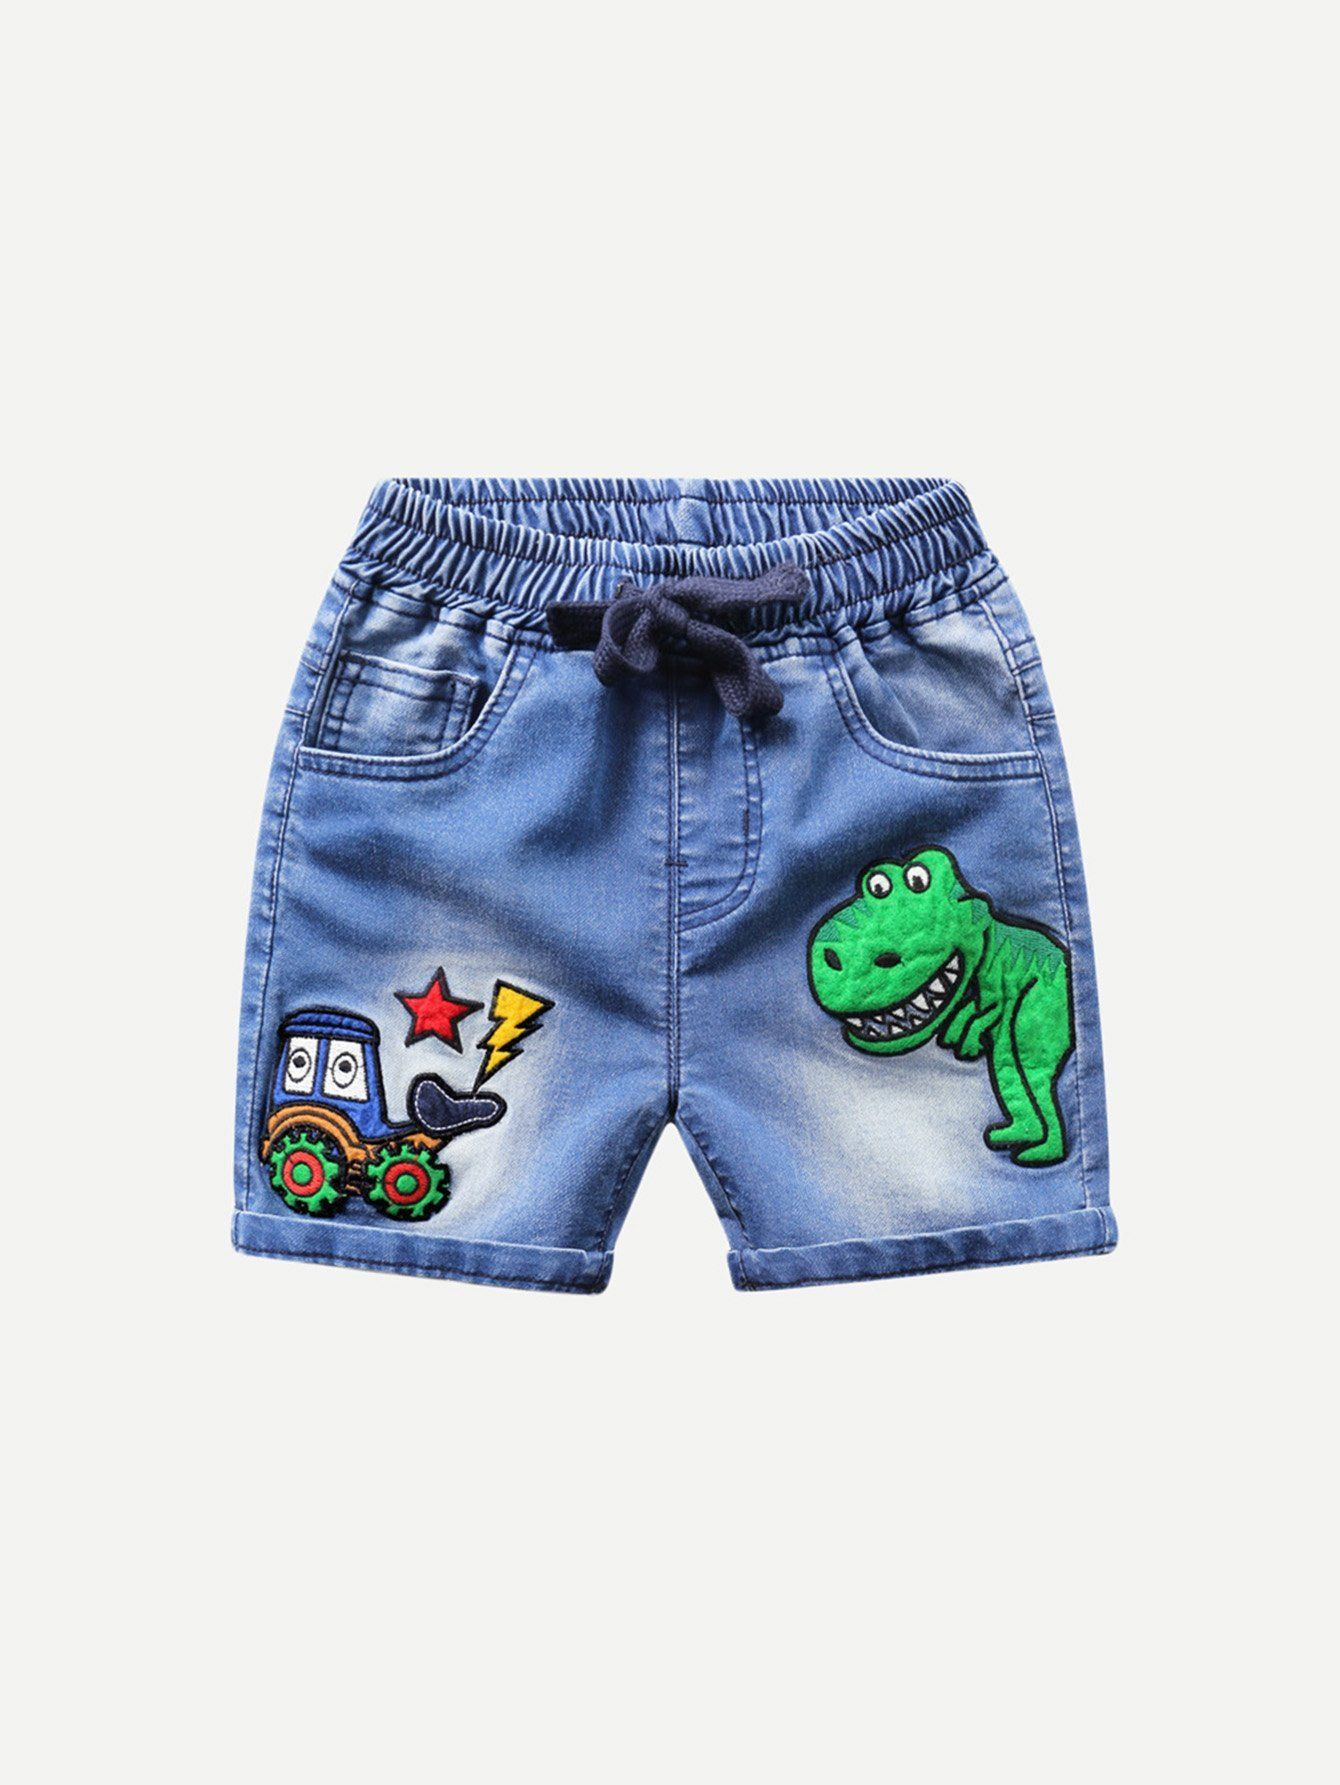 473ba3b6f Boys Cartoon Embroidery Drawstring Waist Pants | OCT 18 | Drawstring ...